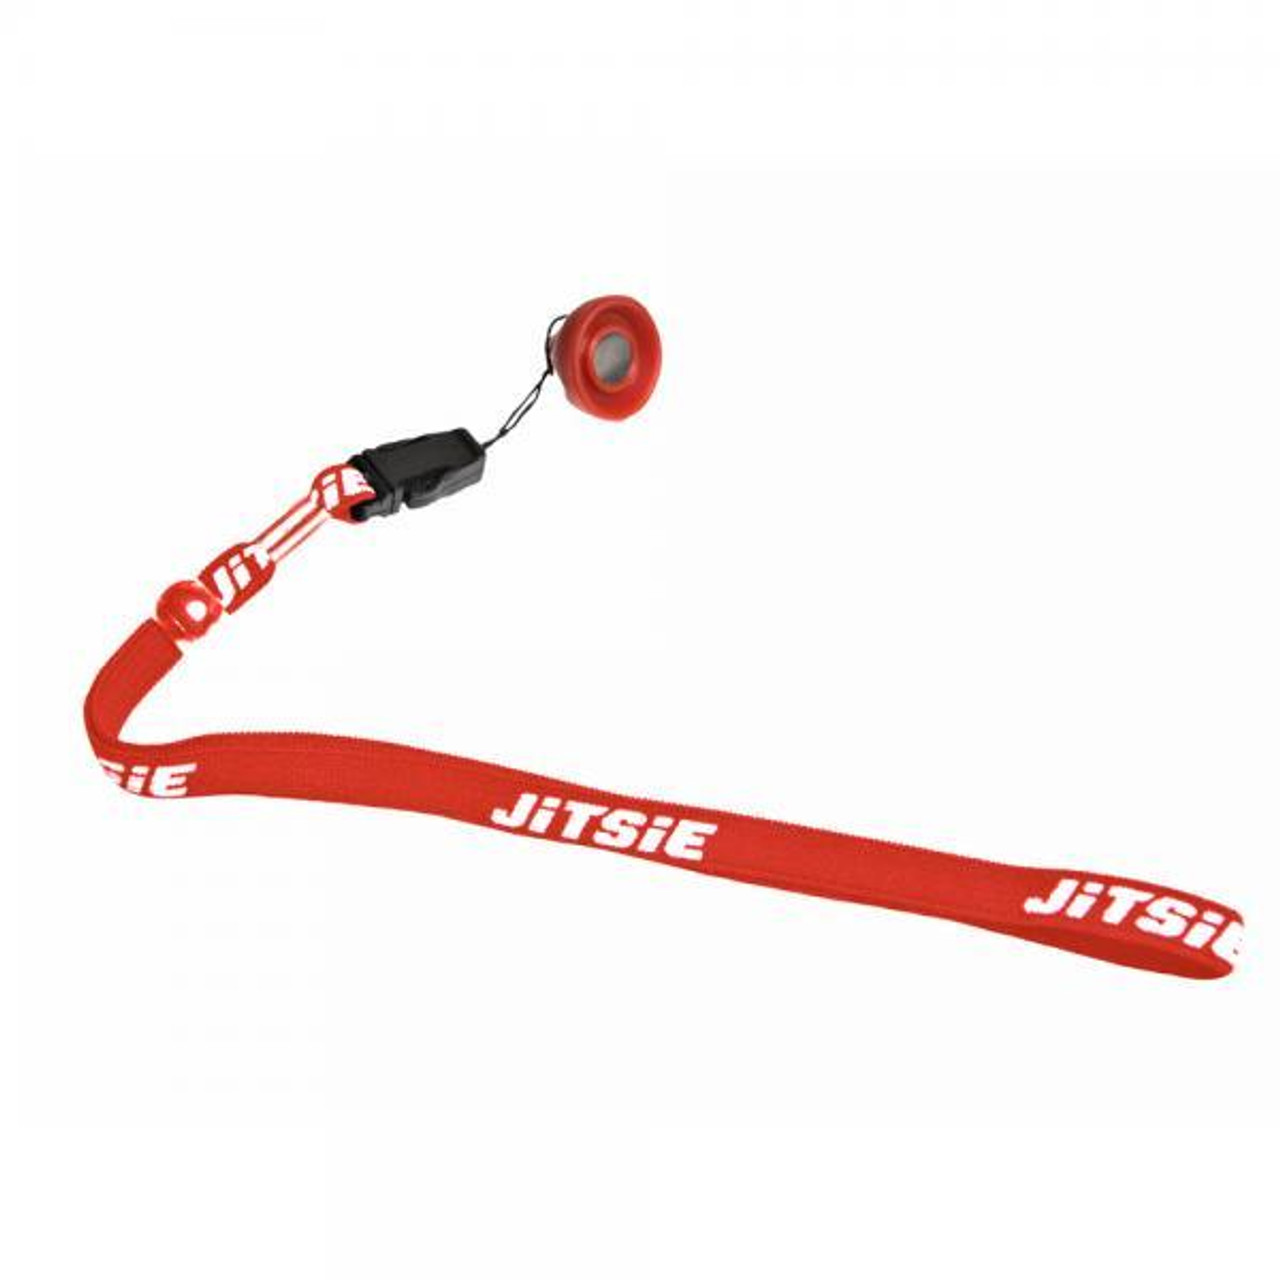 Magnetic lanyard for engine kill button, red